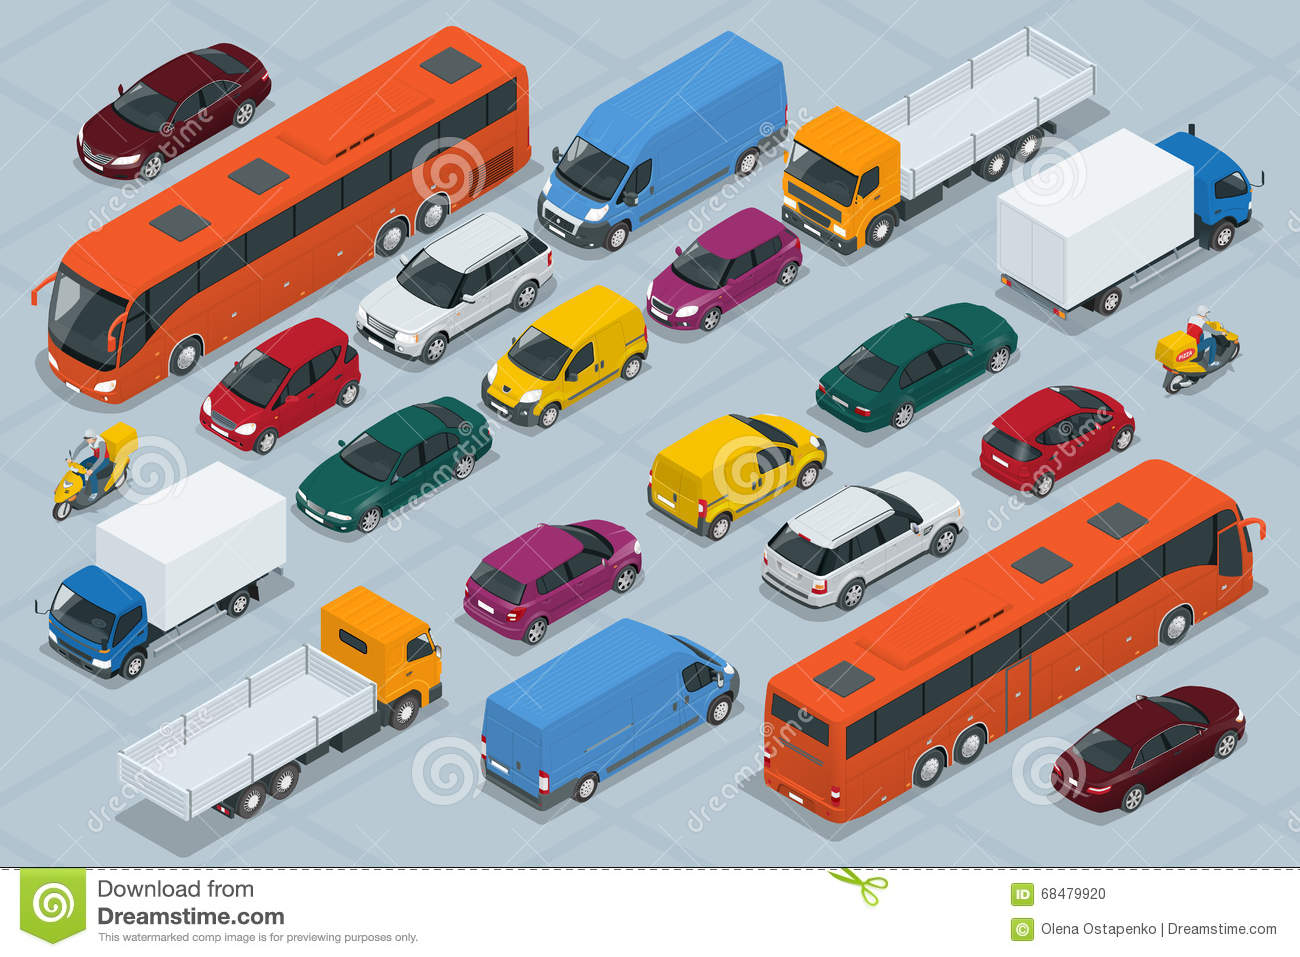 Car icons. Flat 3d isometric high quality city transport car icon set. Car, van, cargo truck, off-road, bus, scooter